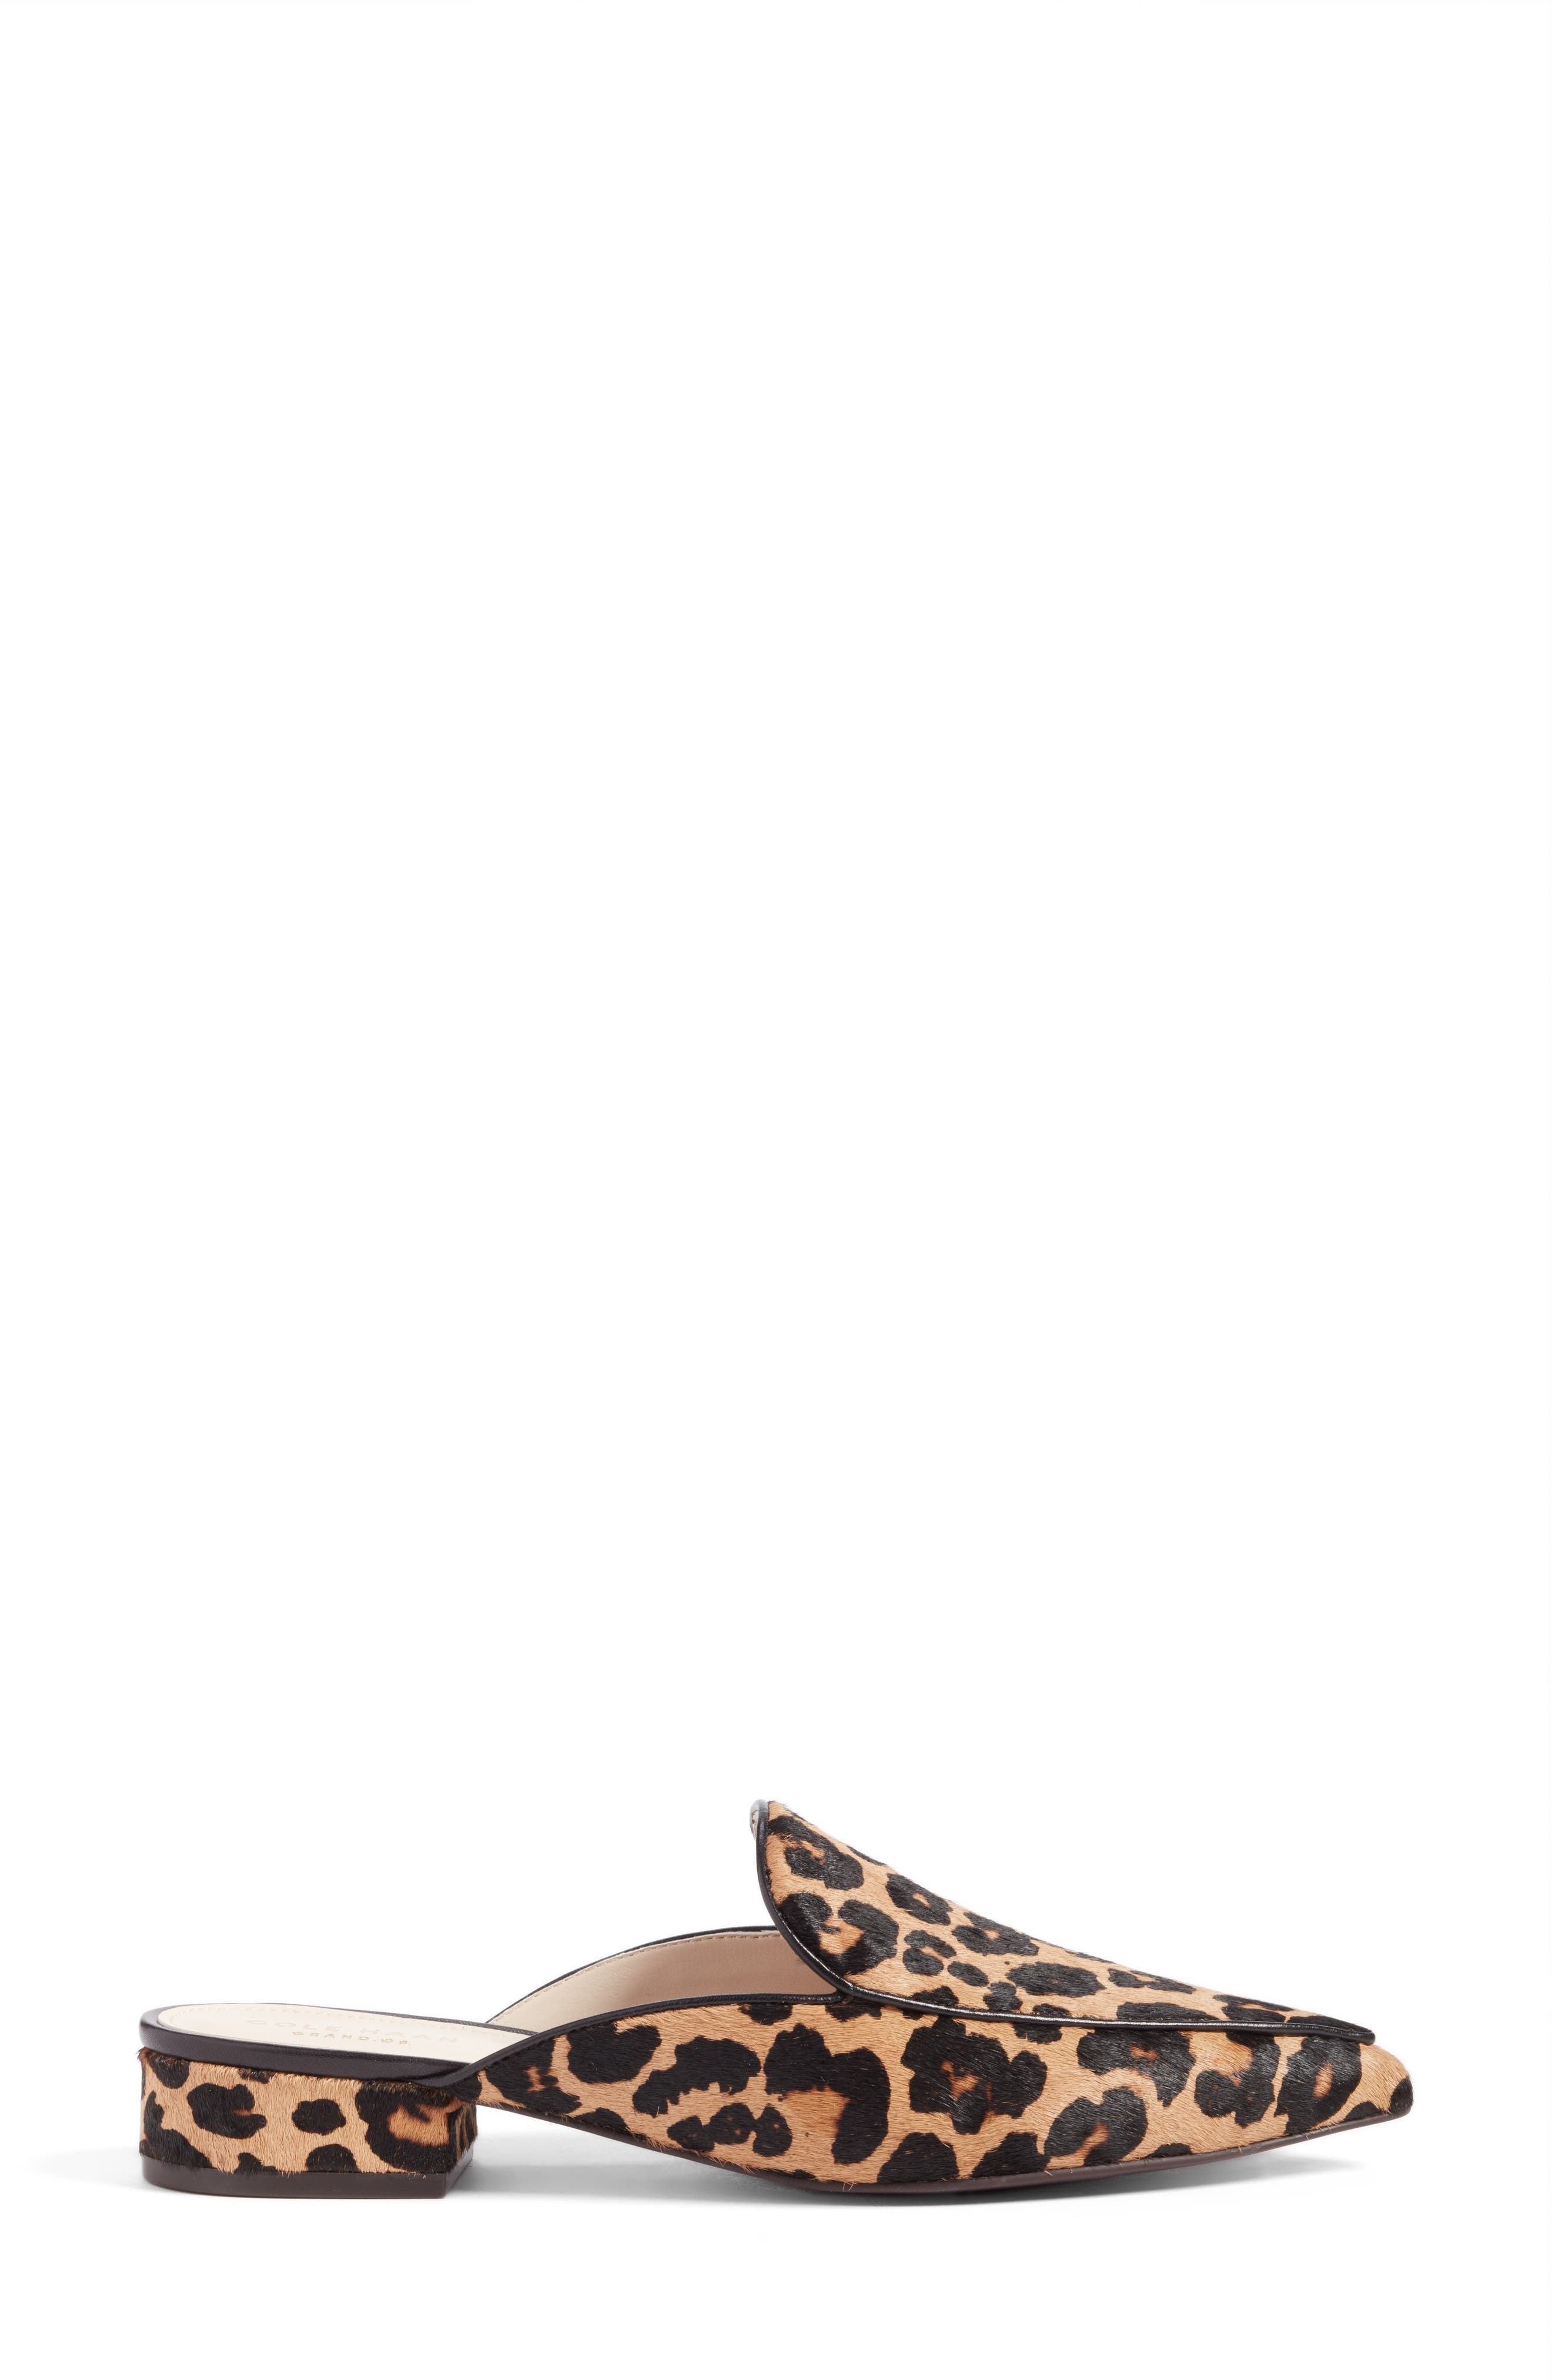 Piper Loafer Mule,                             Alternate thumbnail 3, color,                             OCELOT PRINT CALF HAIR